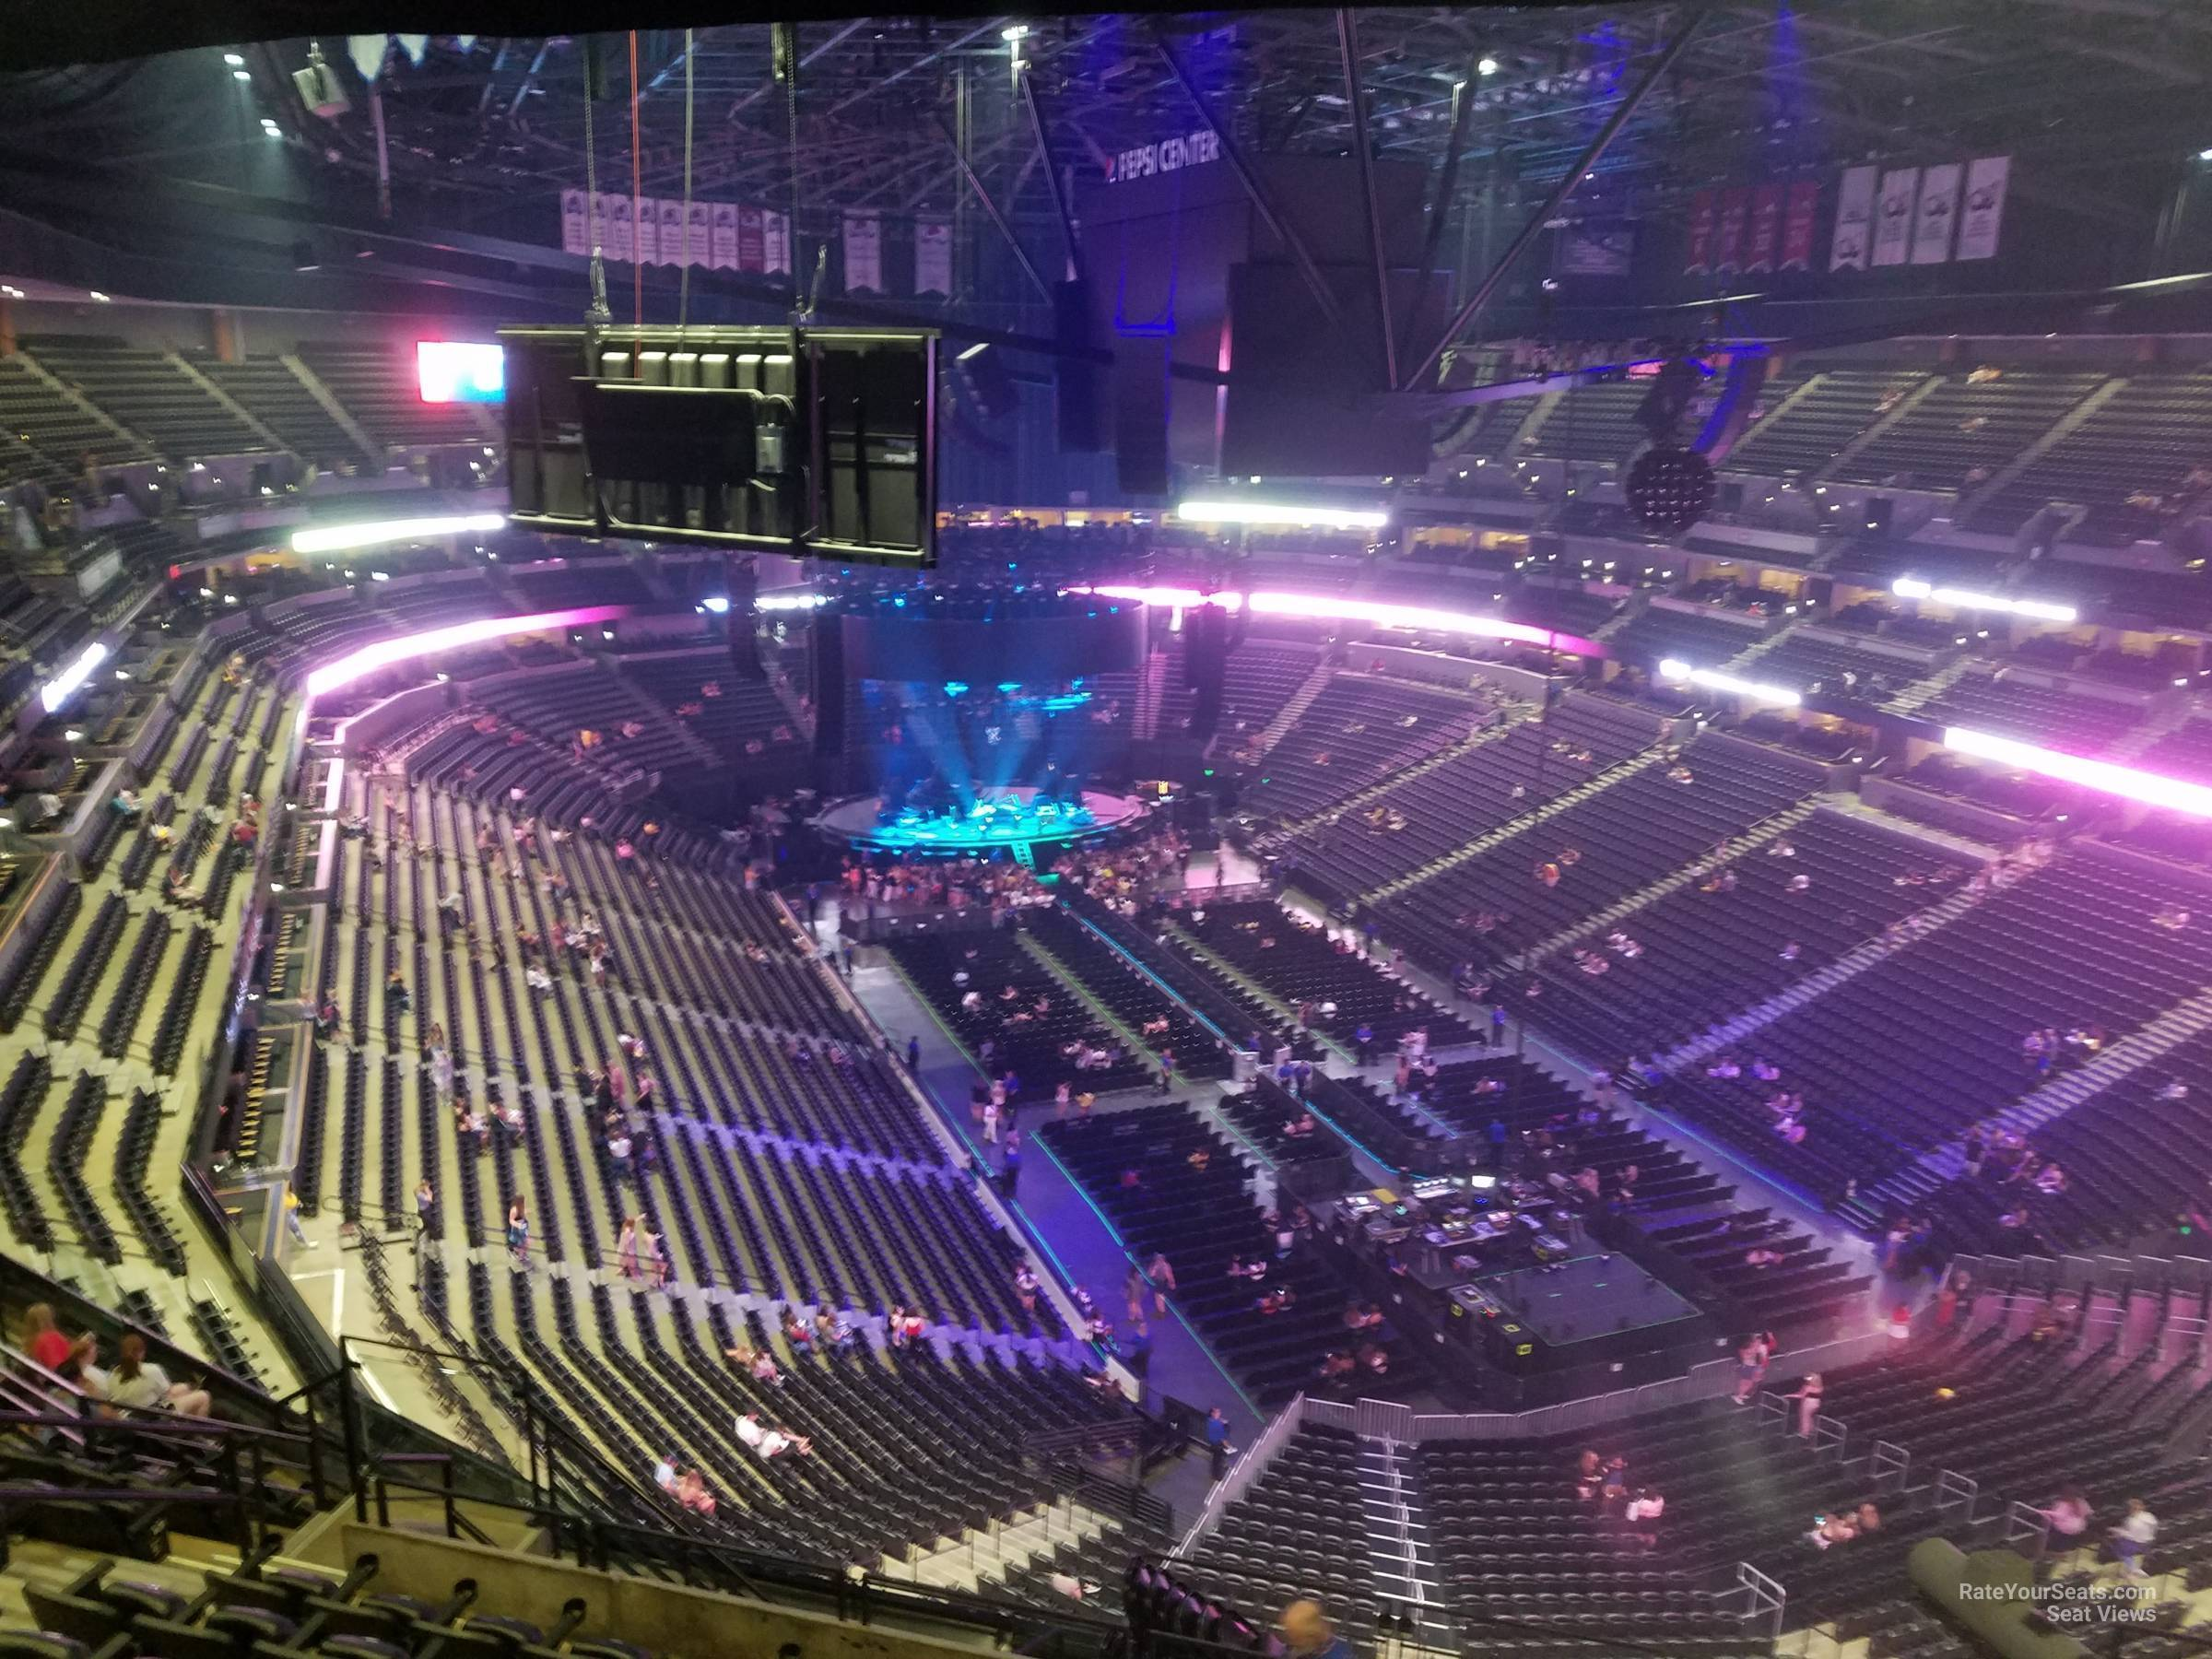 Section 328 At Pepsi Center For Concerts Rateyourseats Com